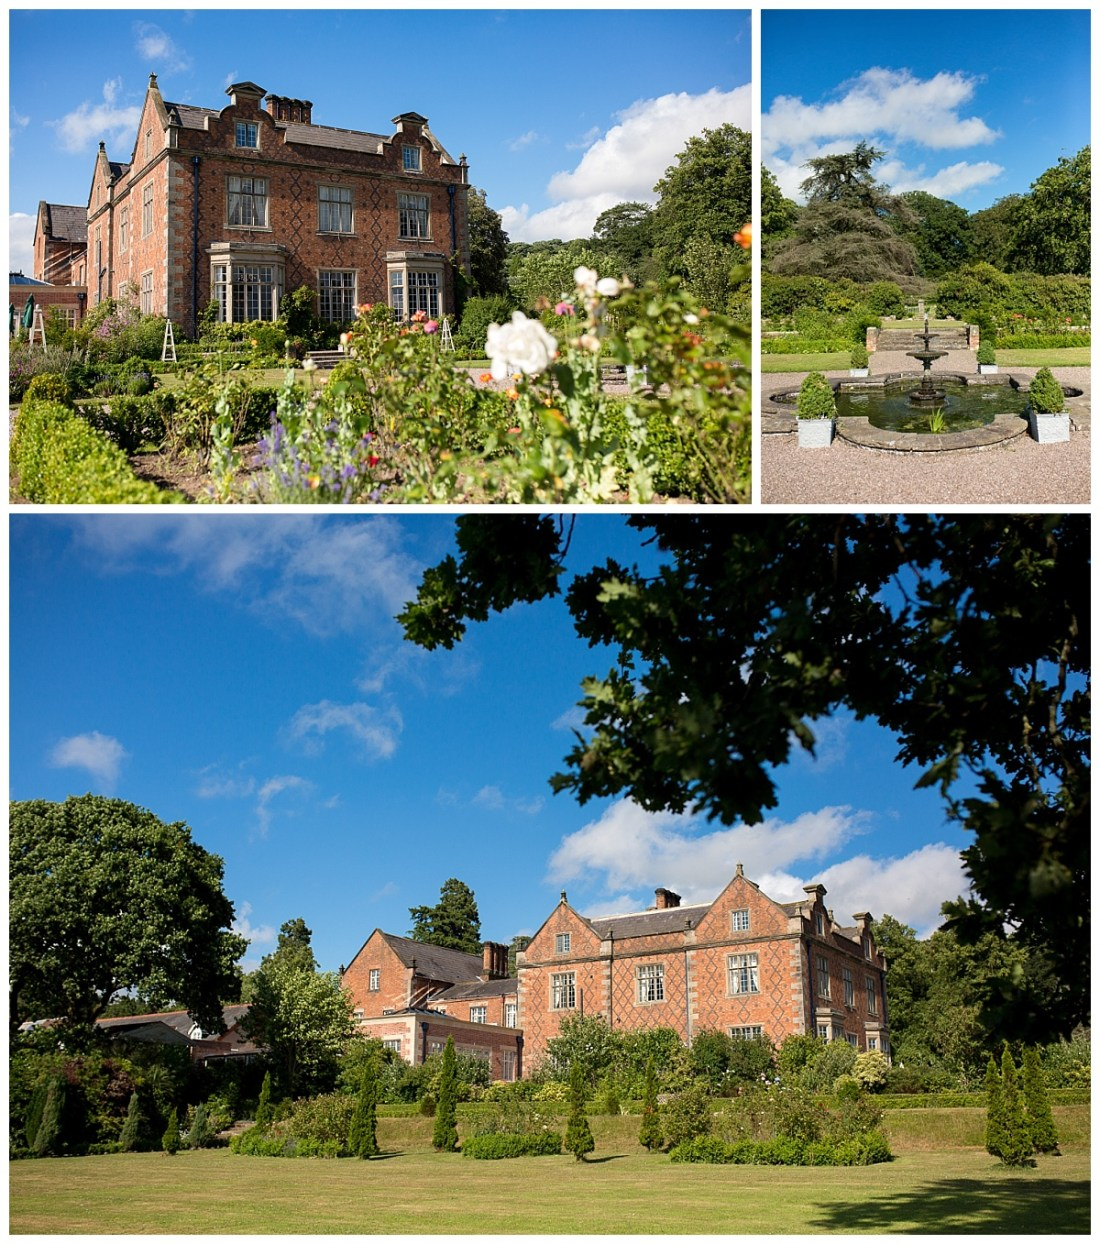 Willington Hall Hotel and Orangery